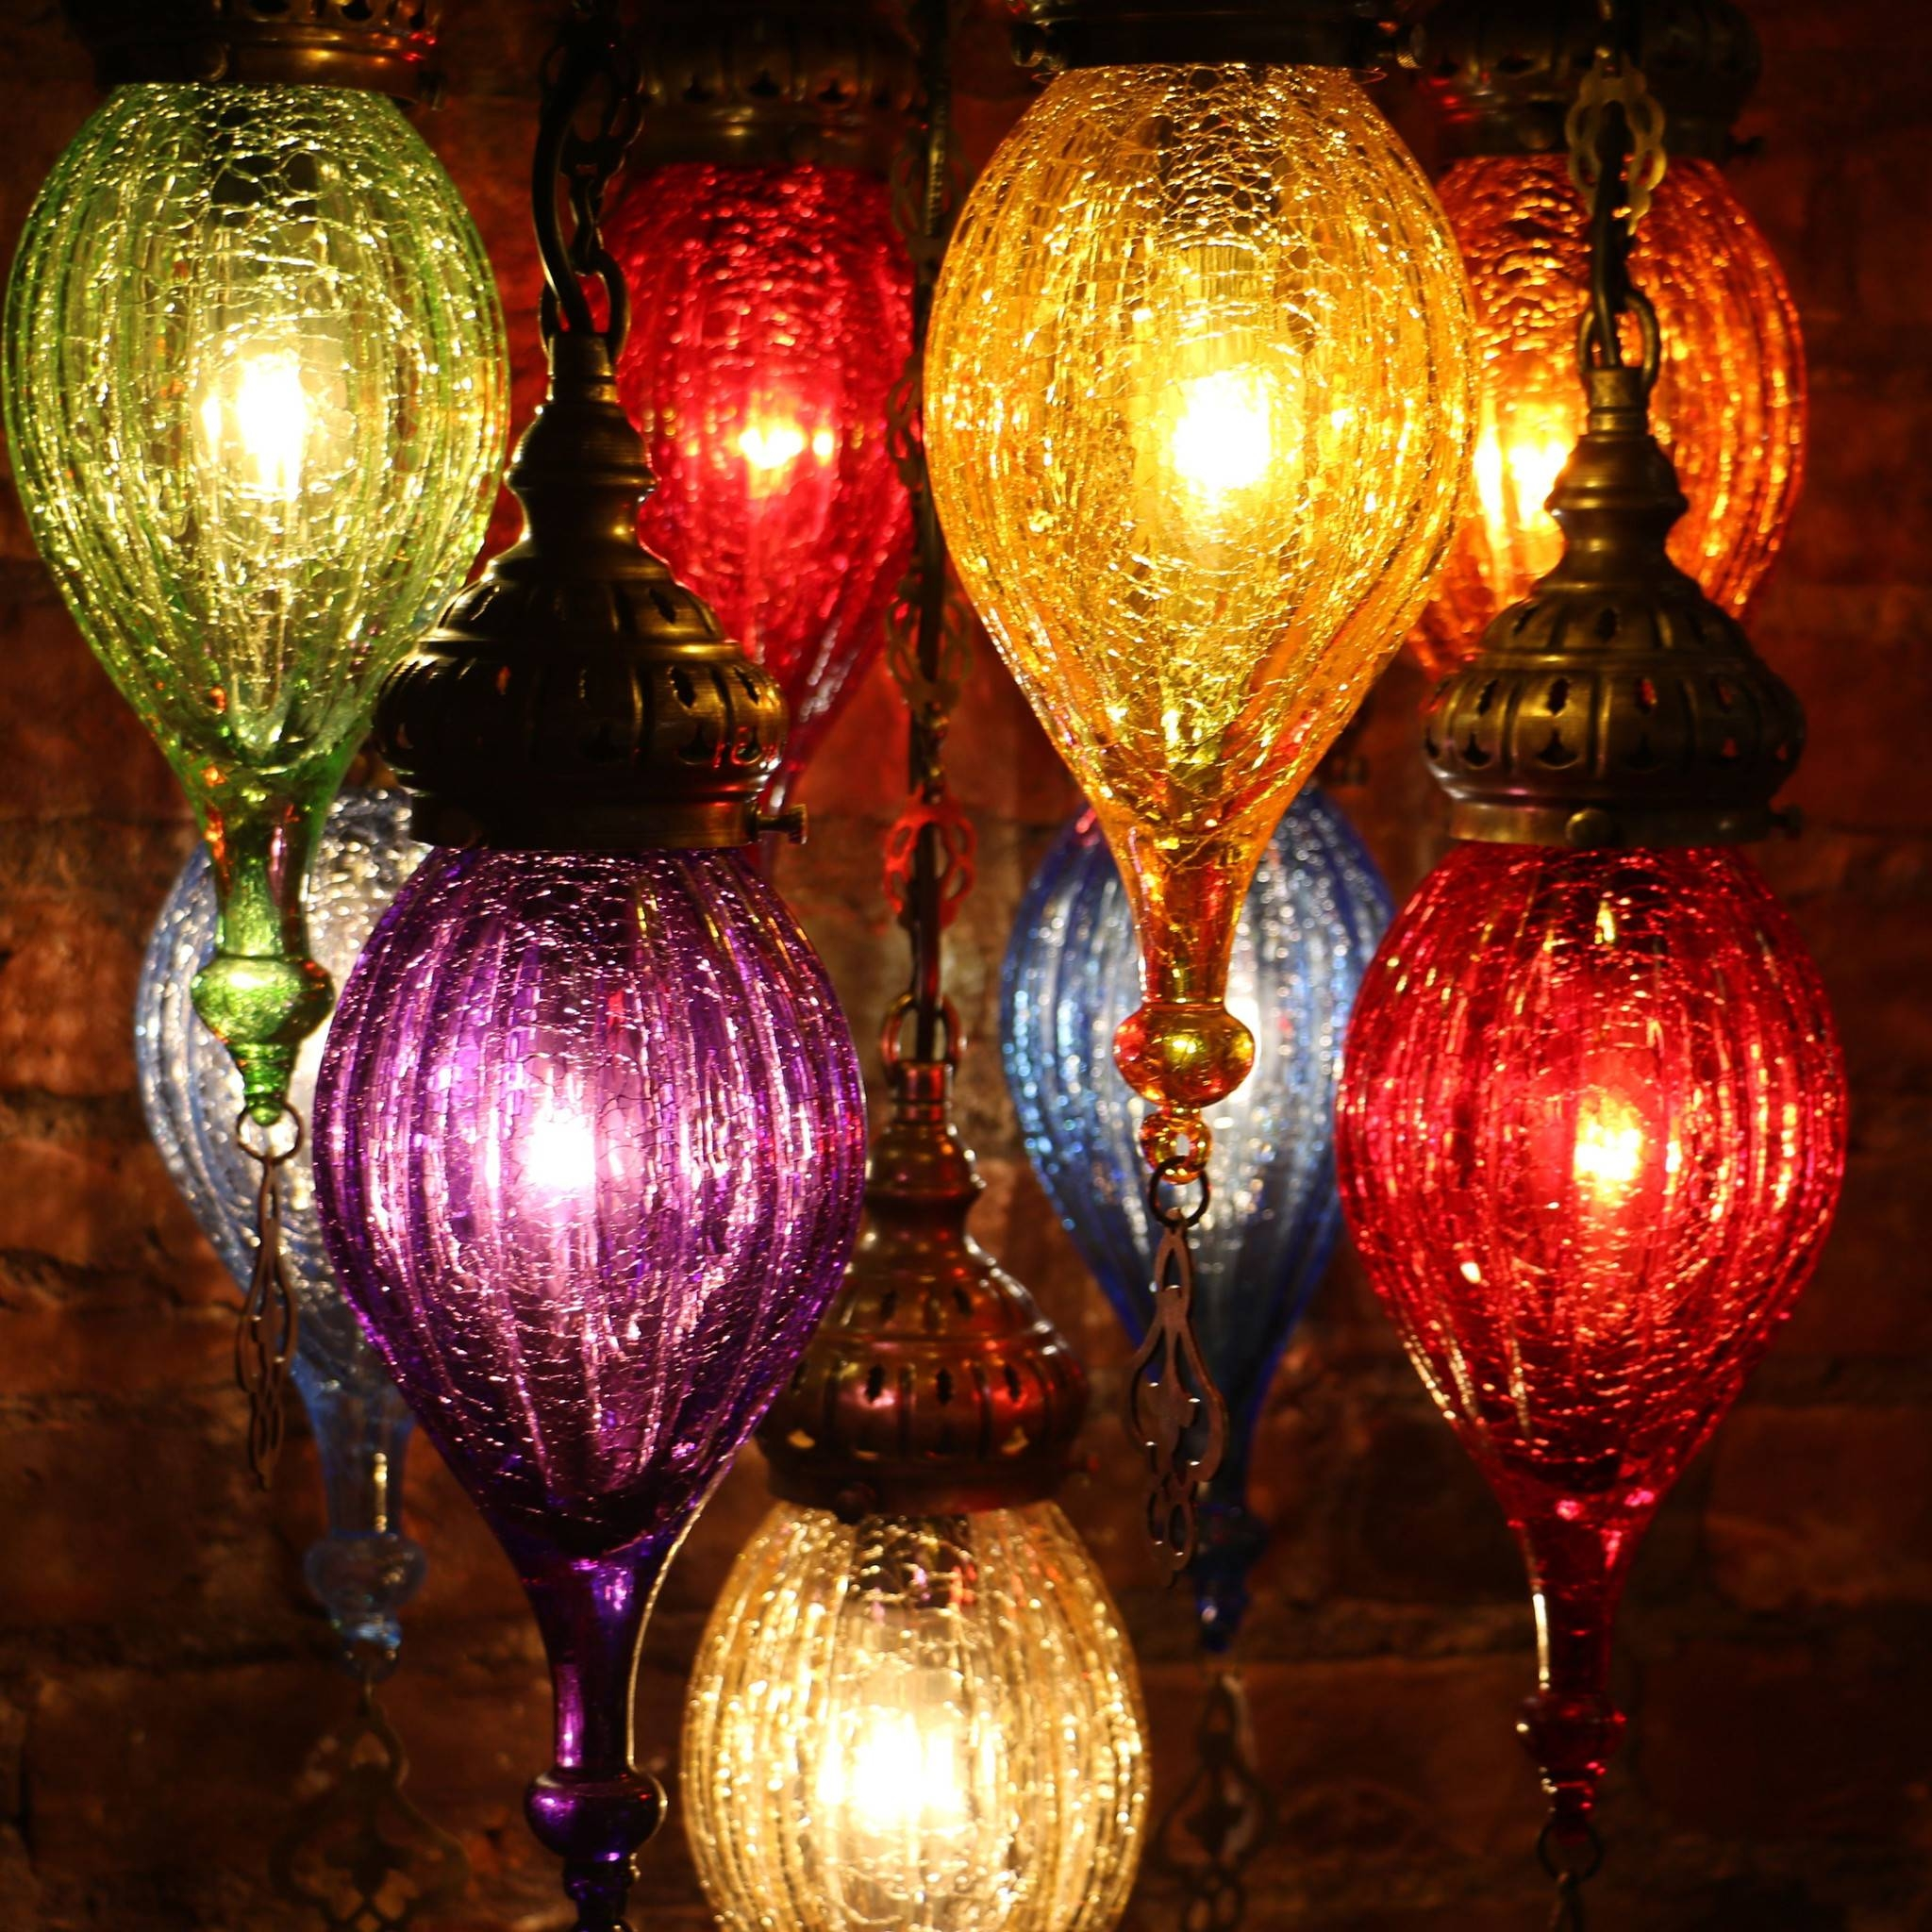 Colored Glass Lamps 95 Breathtaking Decor Plus Handmade Blown in Hand Blown Glass Lights Fixtures (Image 8 of 15)